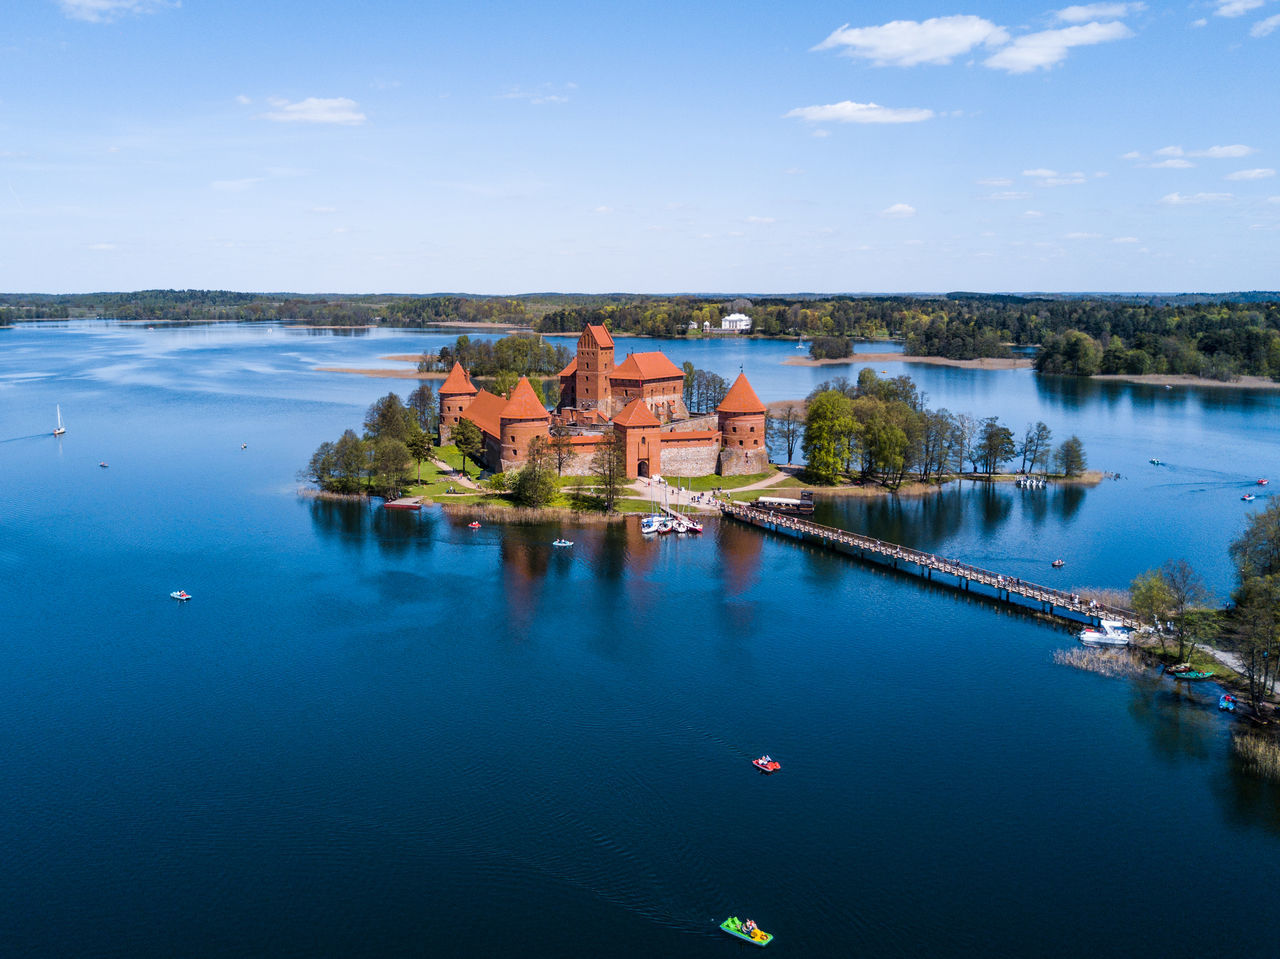 Trakai castle in Lithuania - tourist attraction in Lithuania Architecture Beauty In Nature Building Exterior Built Structure Dji Djimavicpro Drone  Dronephotography History Lithuania Mavic Pro Medieval Medieval Architecture Reflection Scenics Sigh Sightseeing Tourism Town Trakai Trakai Castle Trakai Island Castle Travel Destinations Village Water The Great Outdoors - 2017 EyeEm Awards